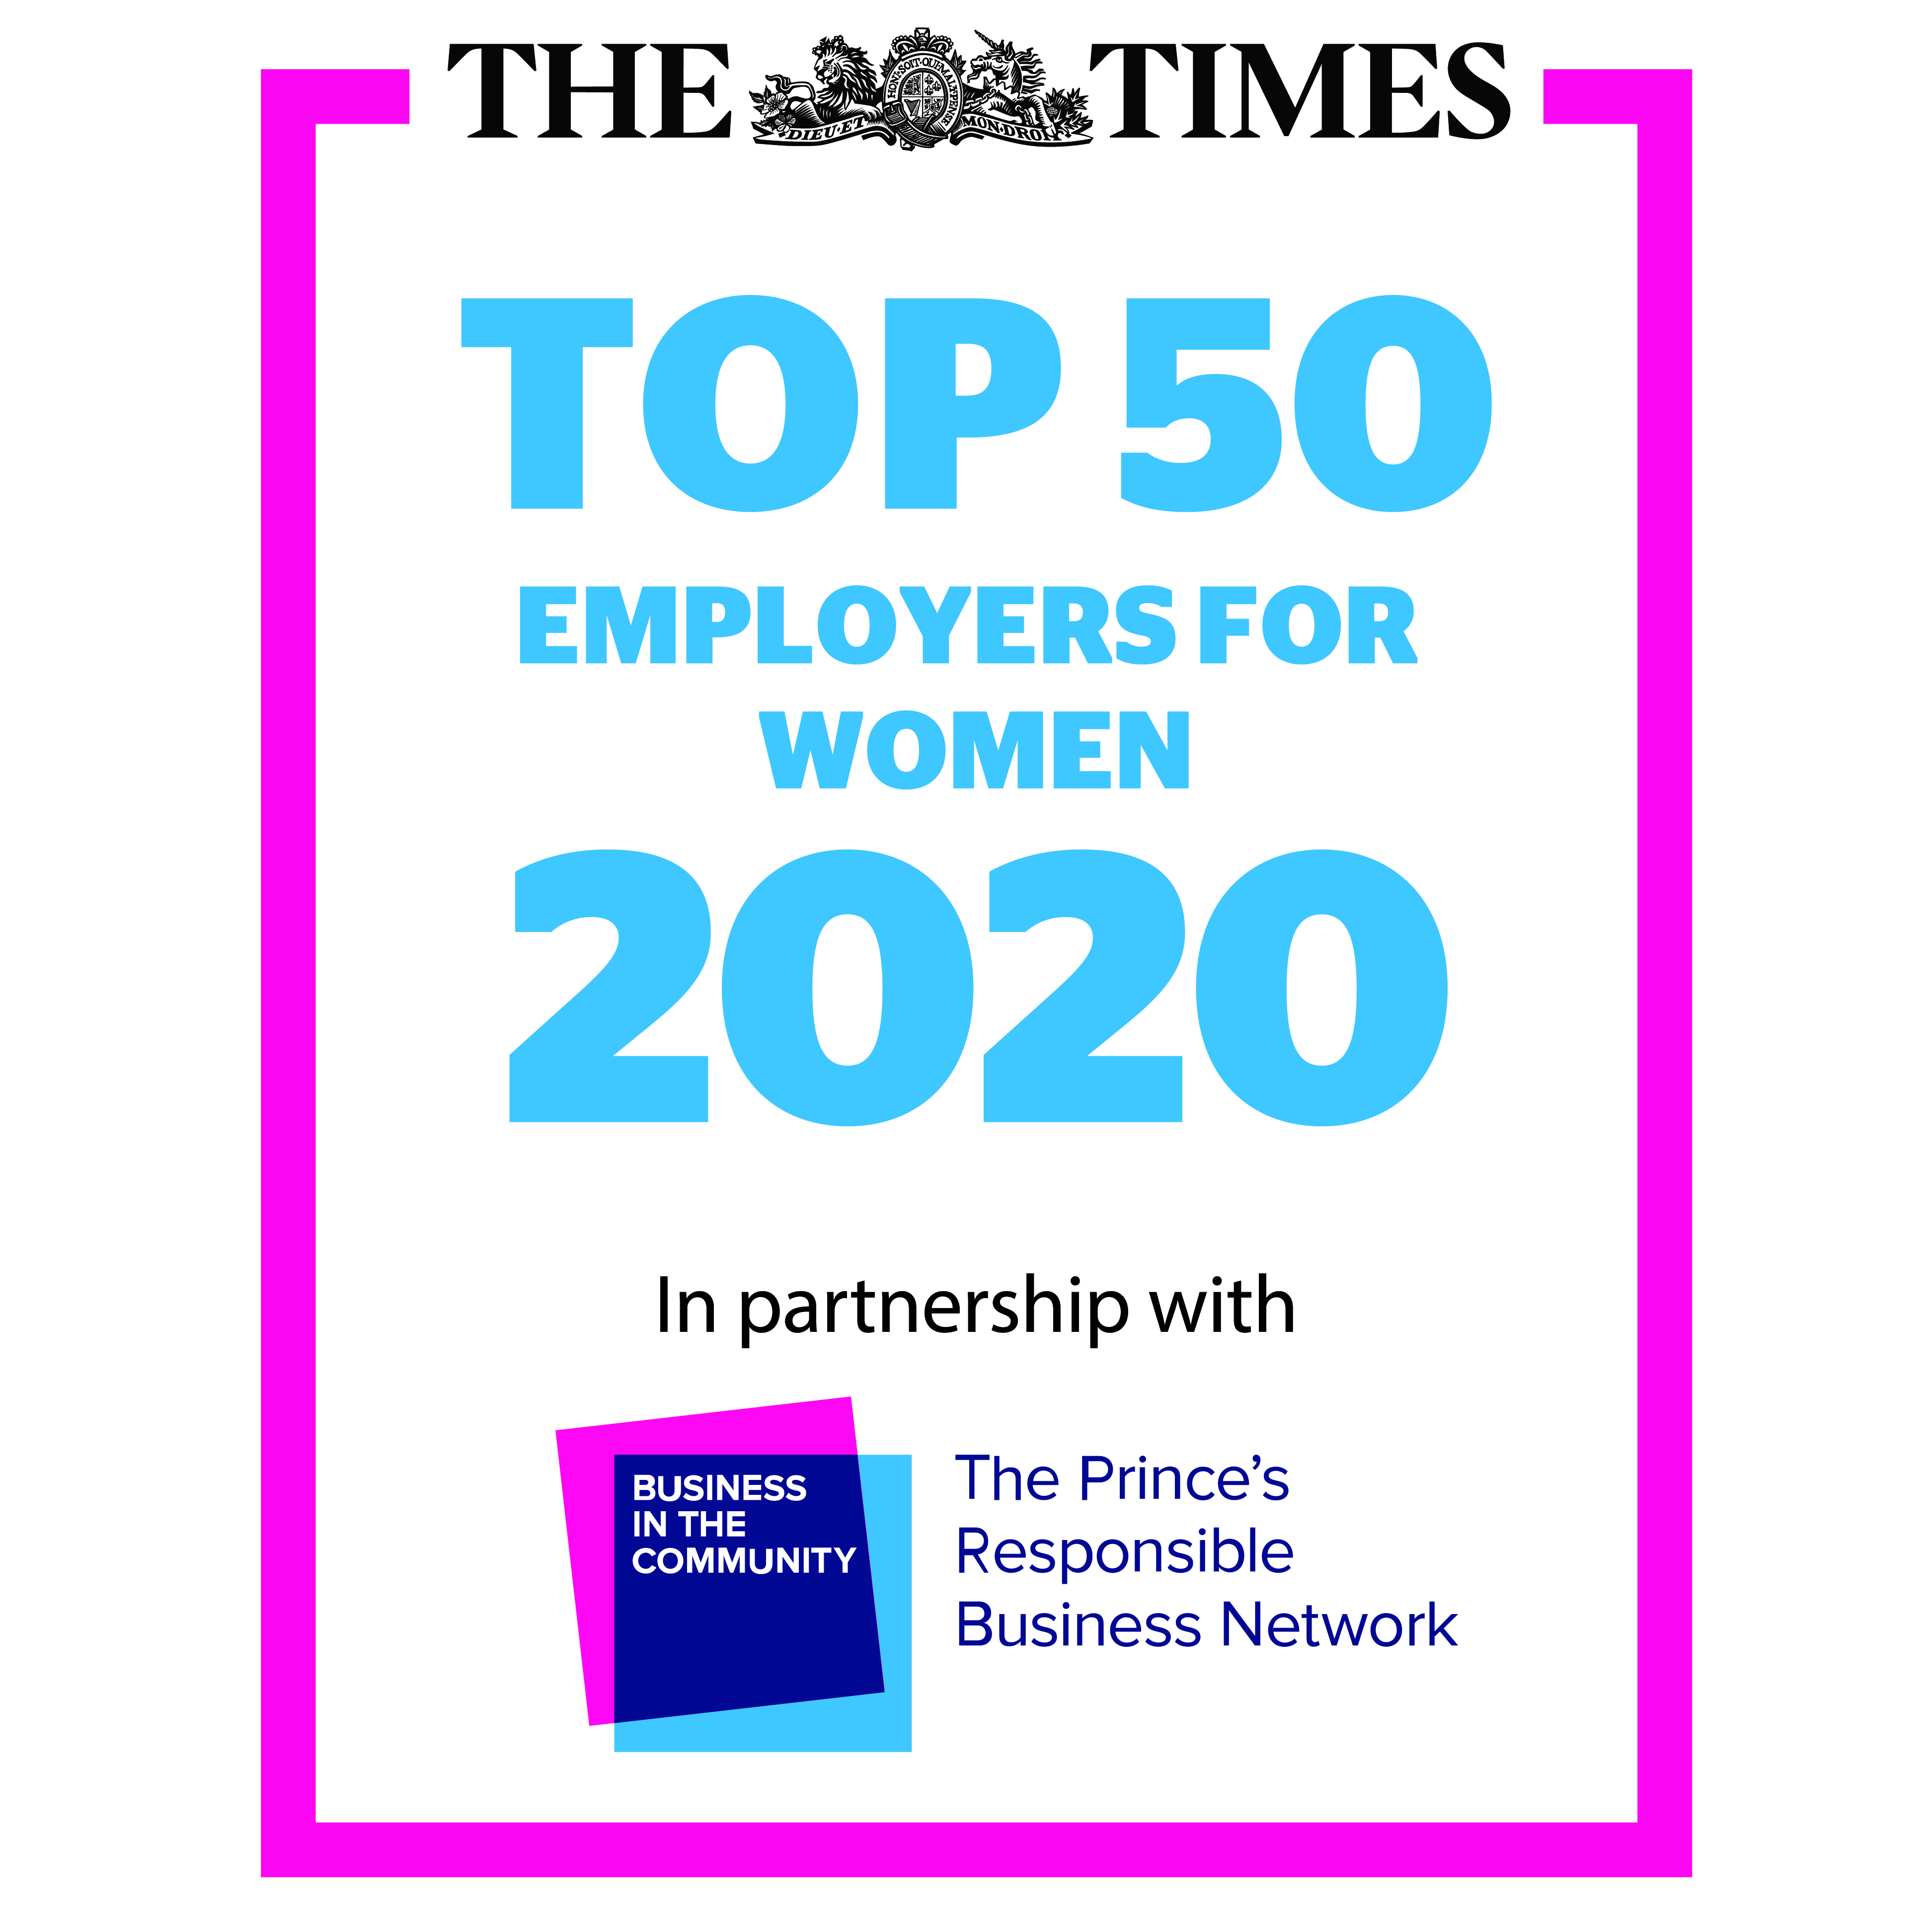 Times Top 50 Employers for Women 2020 logo